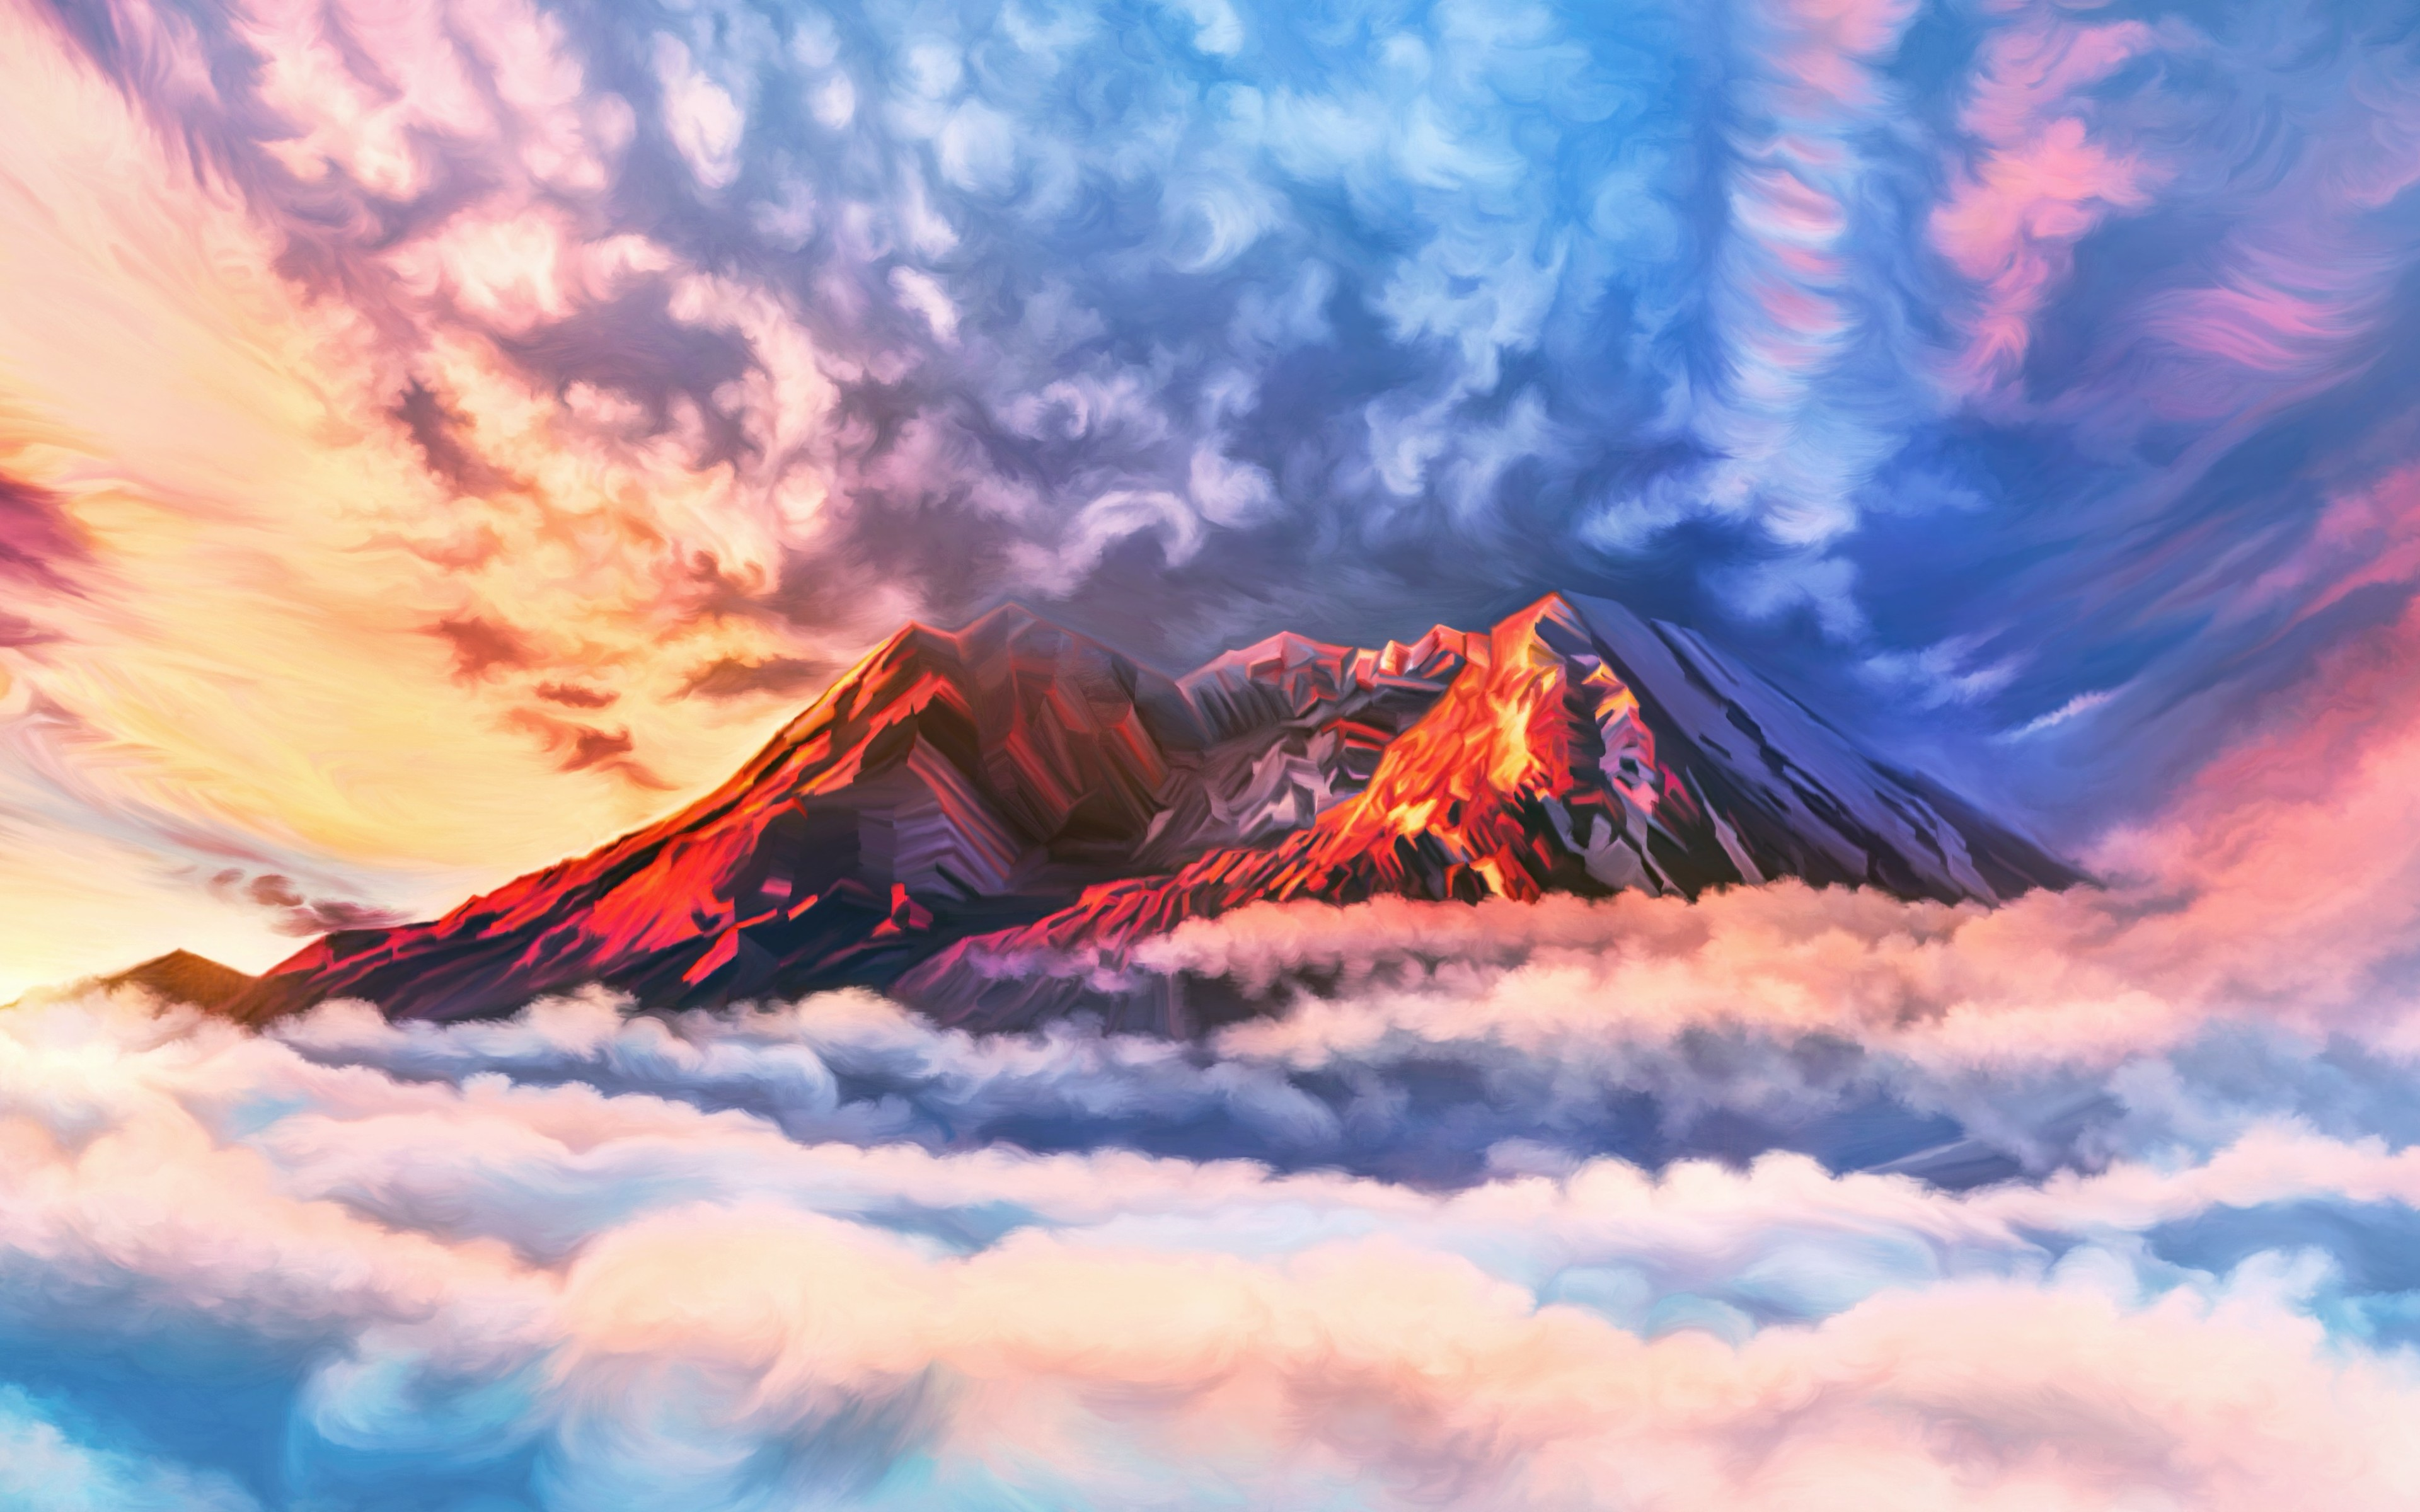 Mountain Above Clouds Background 570951   HD Wallpaper 3840x2400